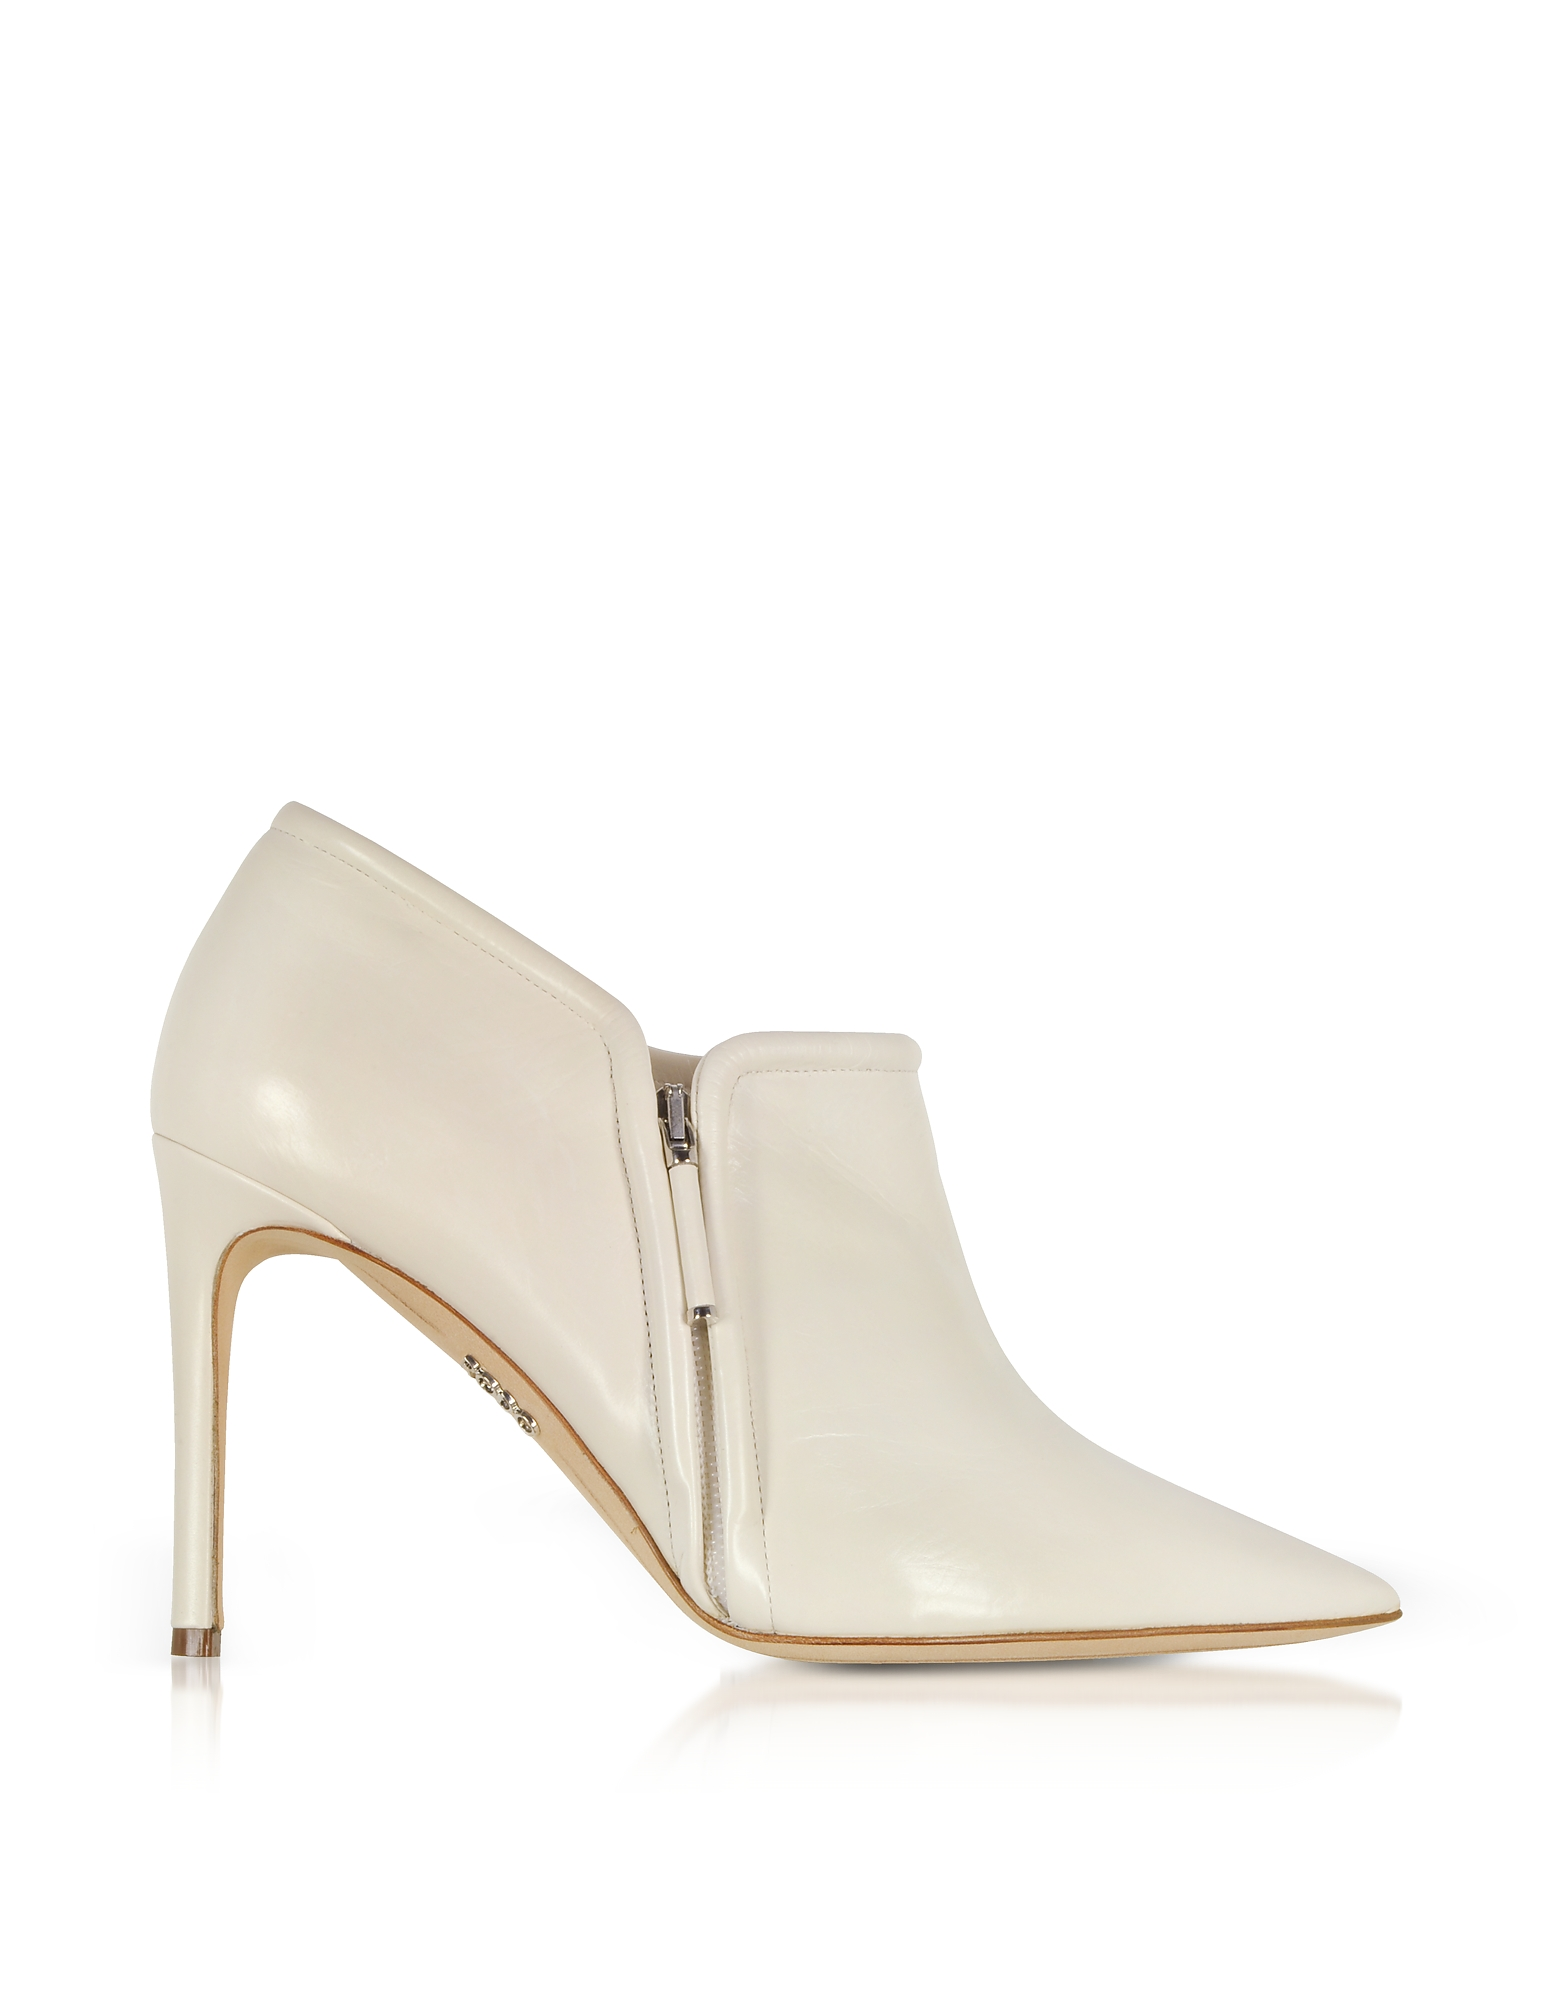 Rodo Designer Shoes, Ivory Leather High Heel Booties